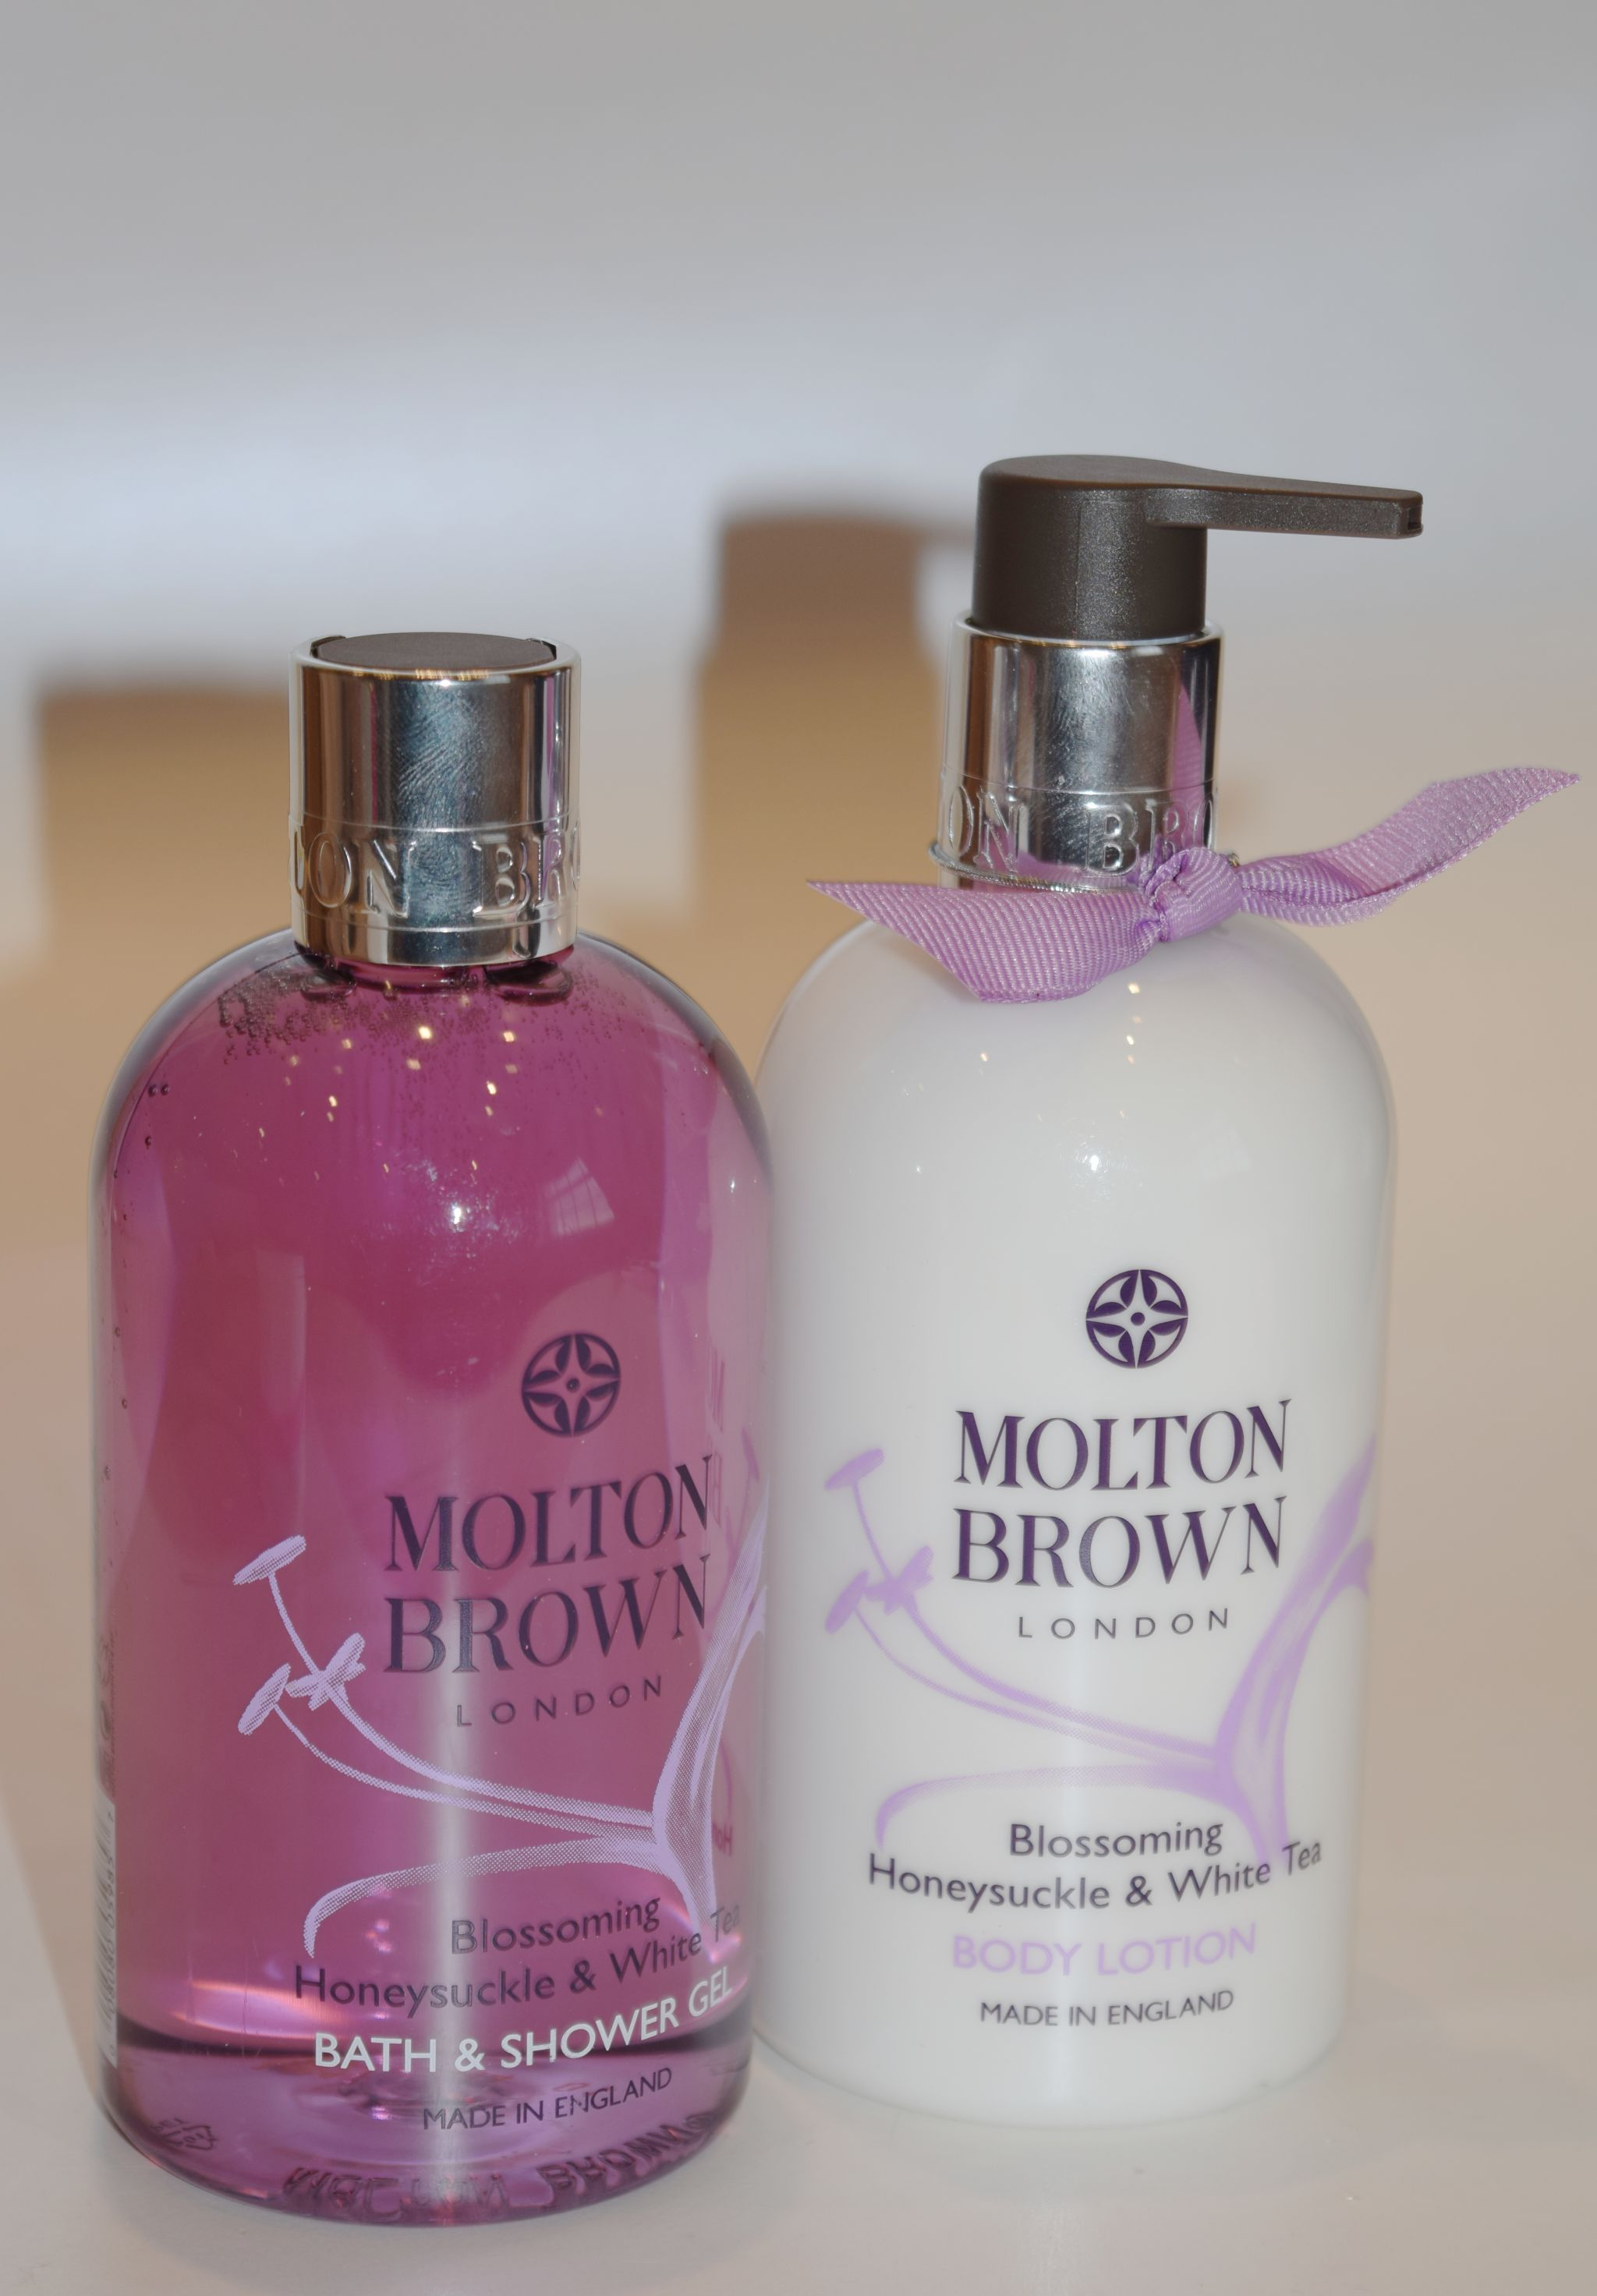 Molton Brown Blossoming Honeysuckle & White Tea Shower GEl and Body Lotion